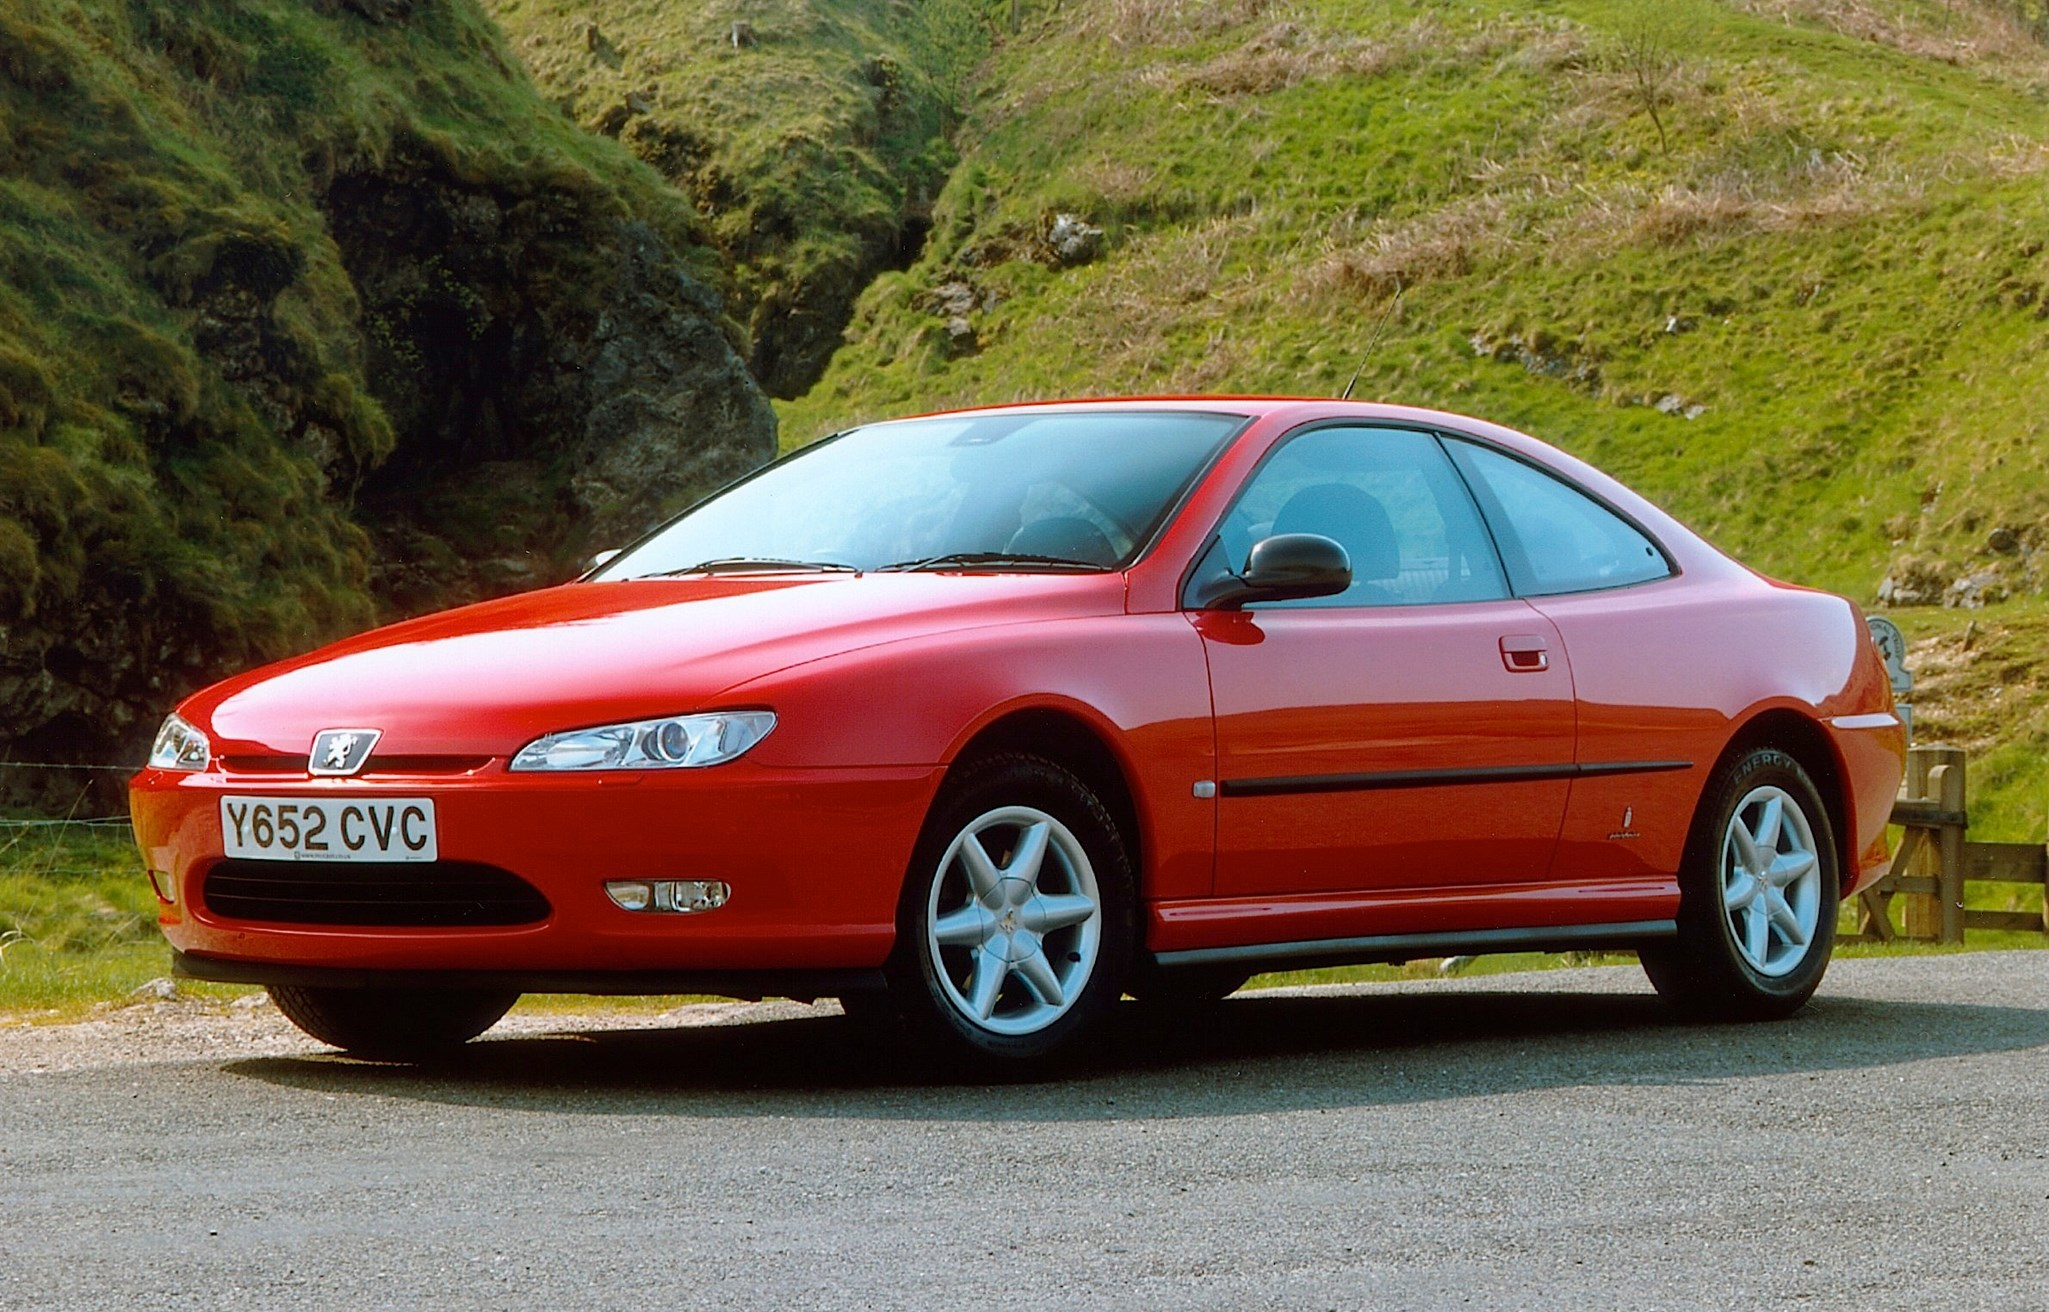 The Peugeot 406 Coupé: an underdog?